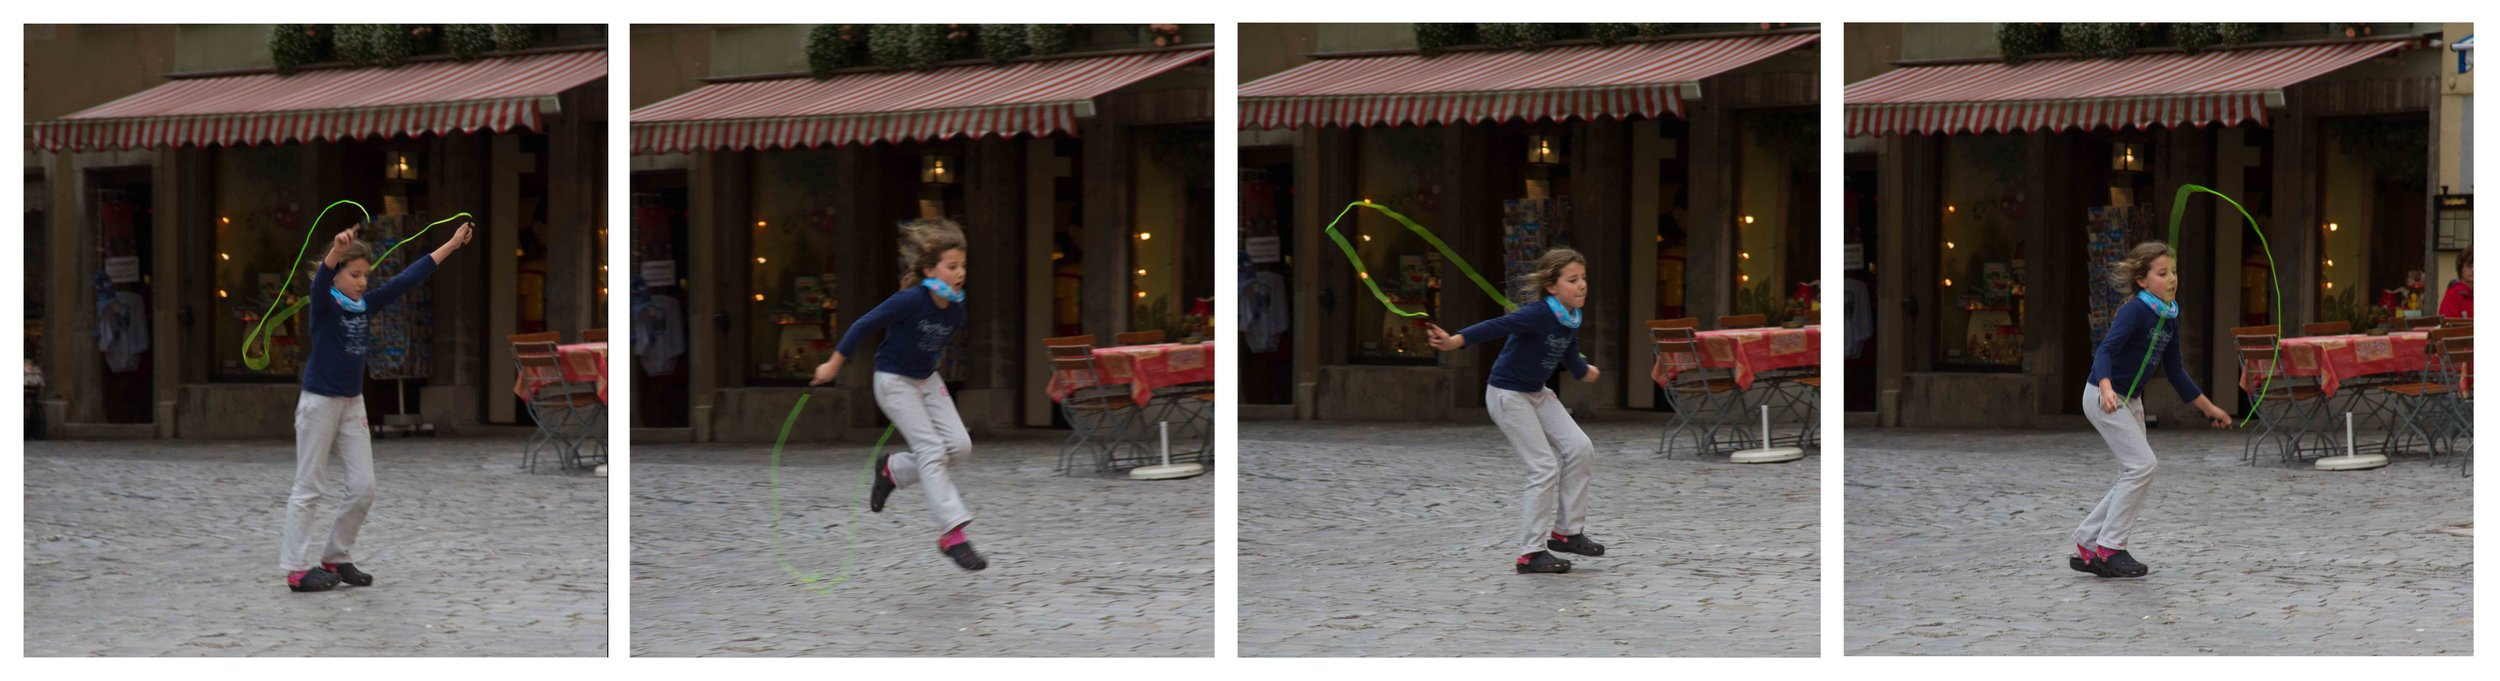 """""""Skipping"""" by Sid Webb, 10x27in, photograph (2011), $89 